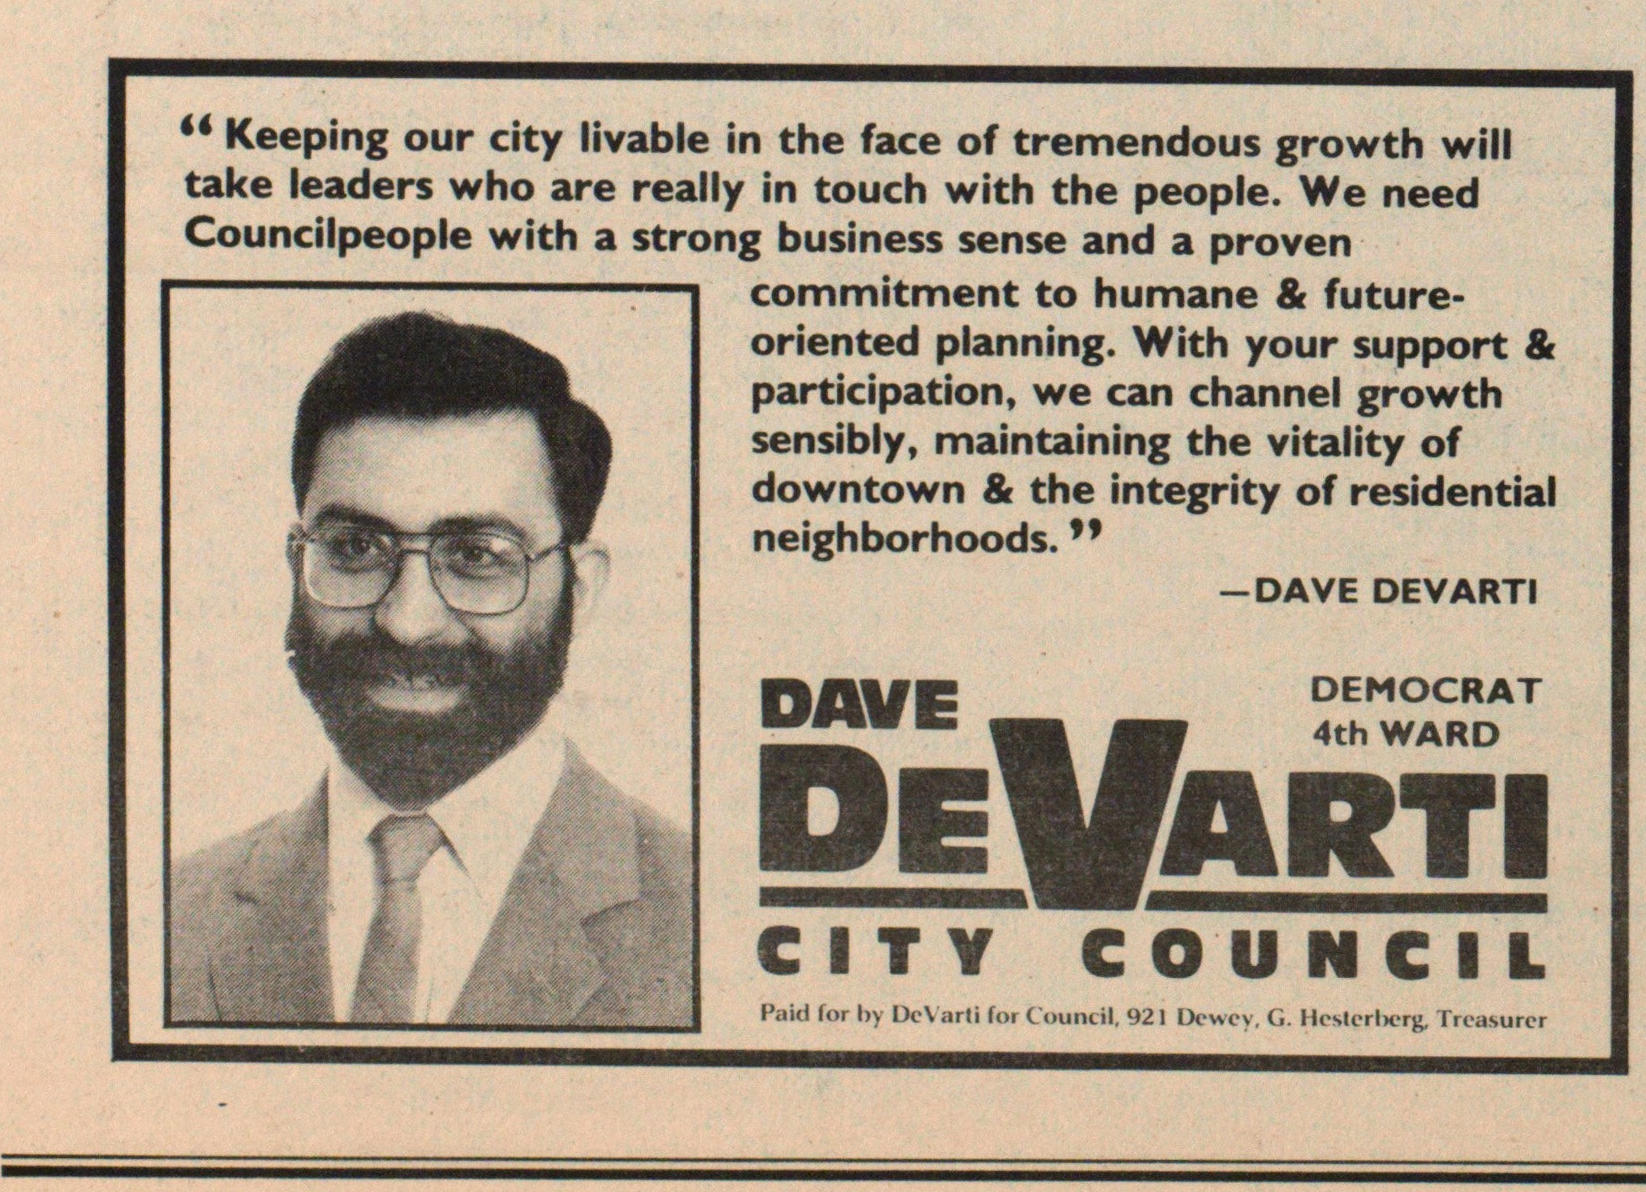 Dave DeVarti for City Council image